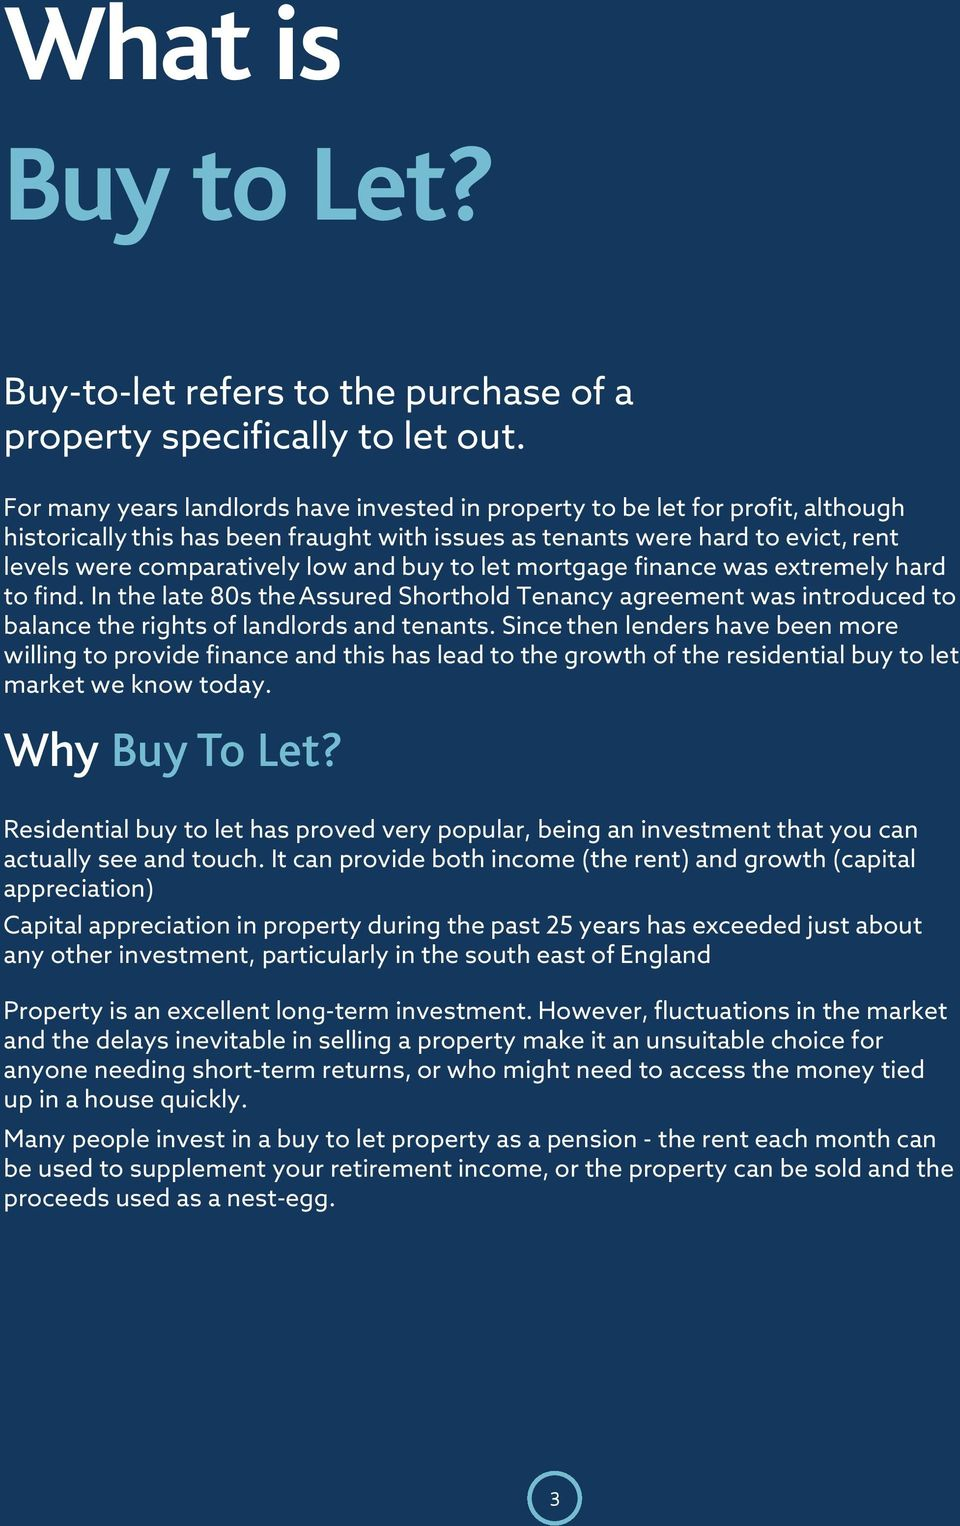 buy to let mortgage finance was extremely hard to find. In the late 80s the Assured Shorthold Tenancy agreement was introduced to balance the rights of landlords and tenants.